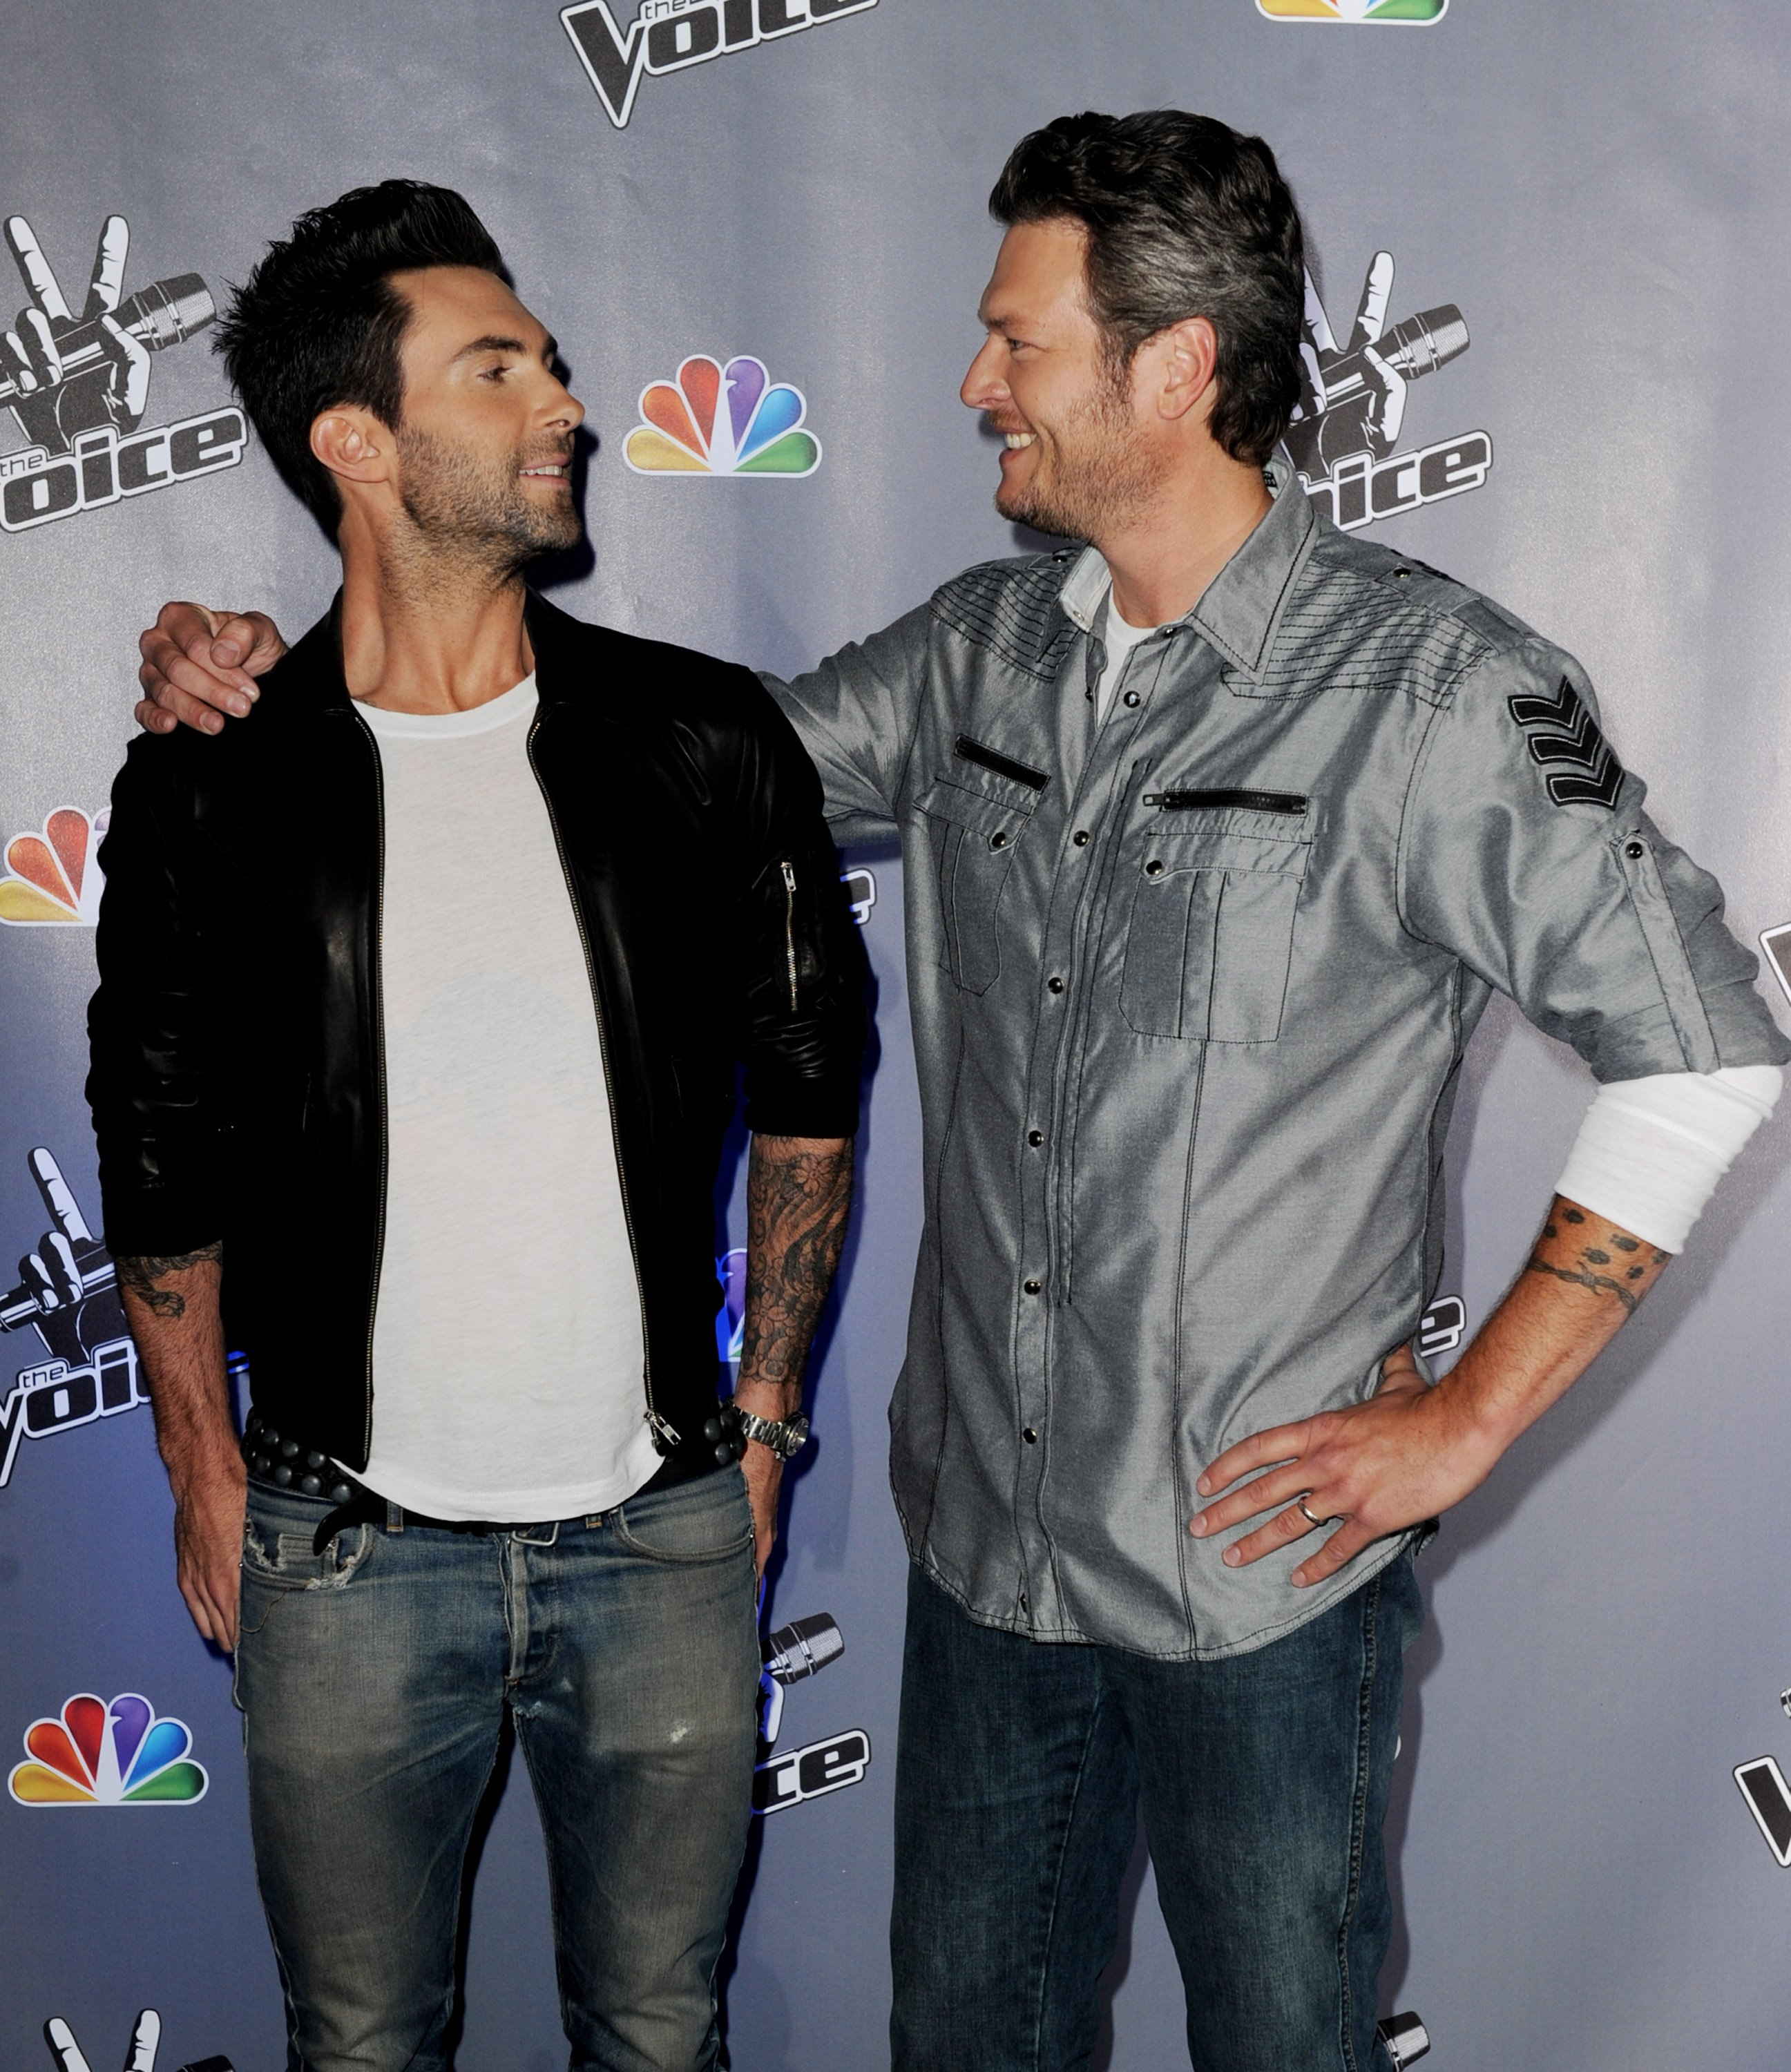 """Adam Levine and Blake Shelton appear at a press junket for """"The Voice"""" in Culver City, California on October 28, 2011 